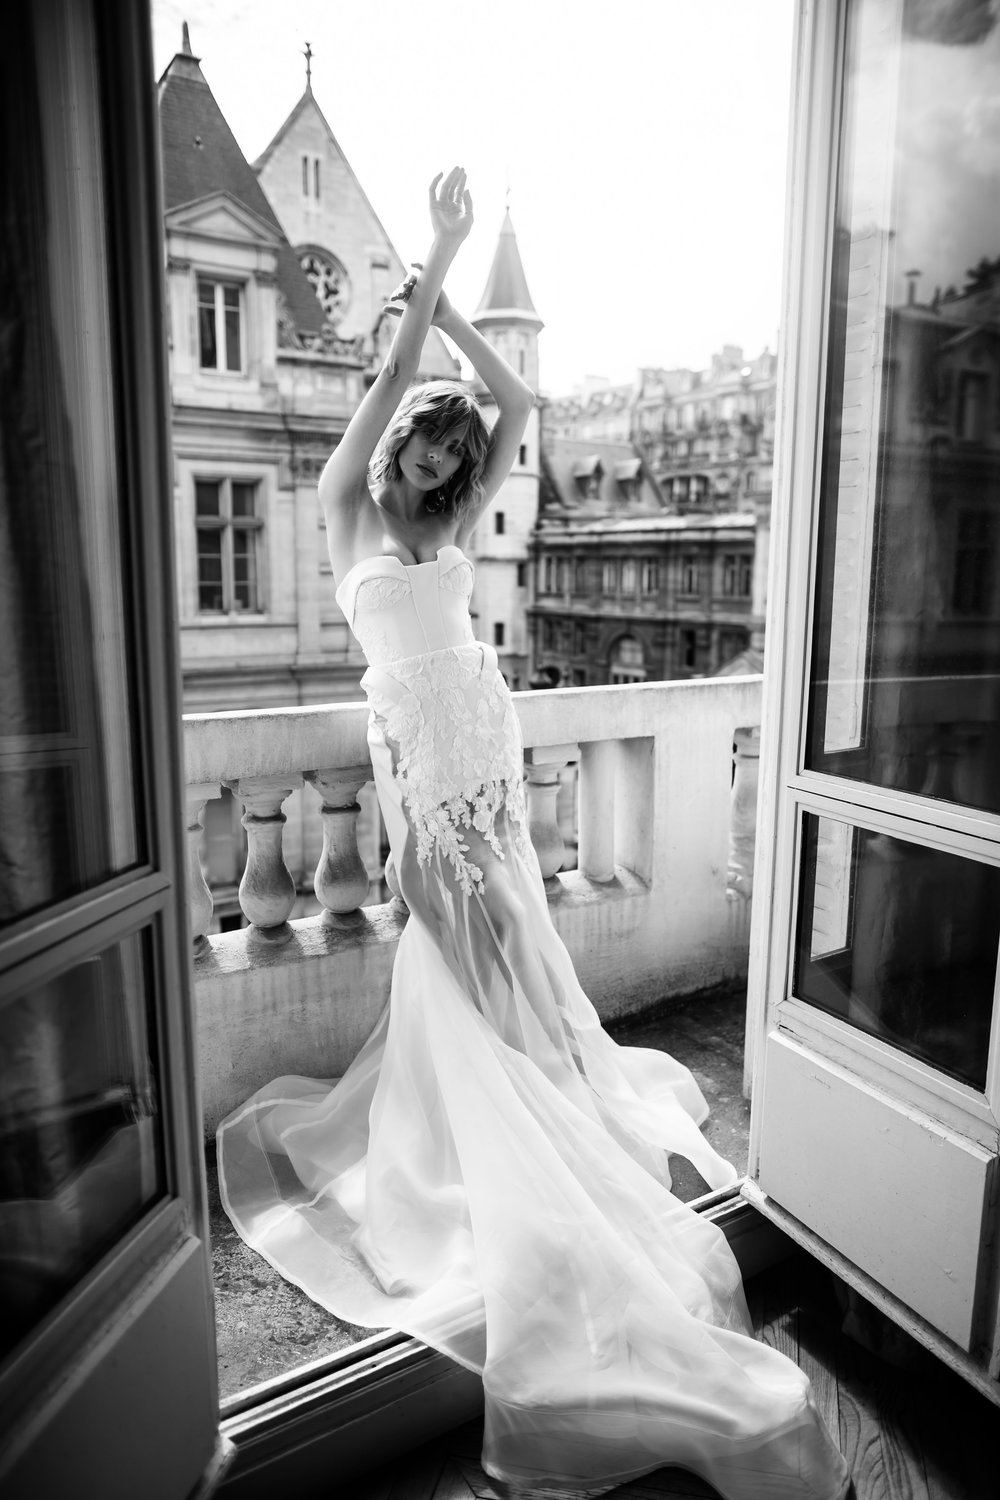 georgia-young-couture-bride-wedding-dressilookbook-paris-ritual-bride-24